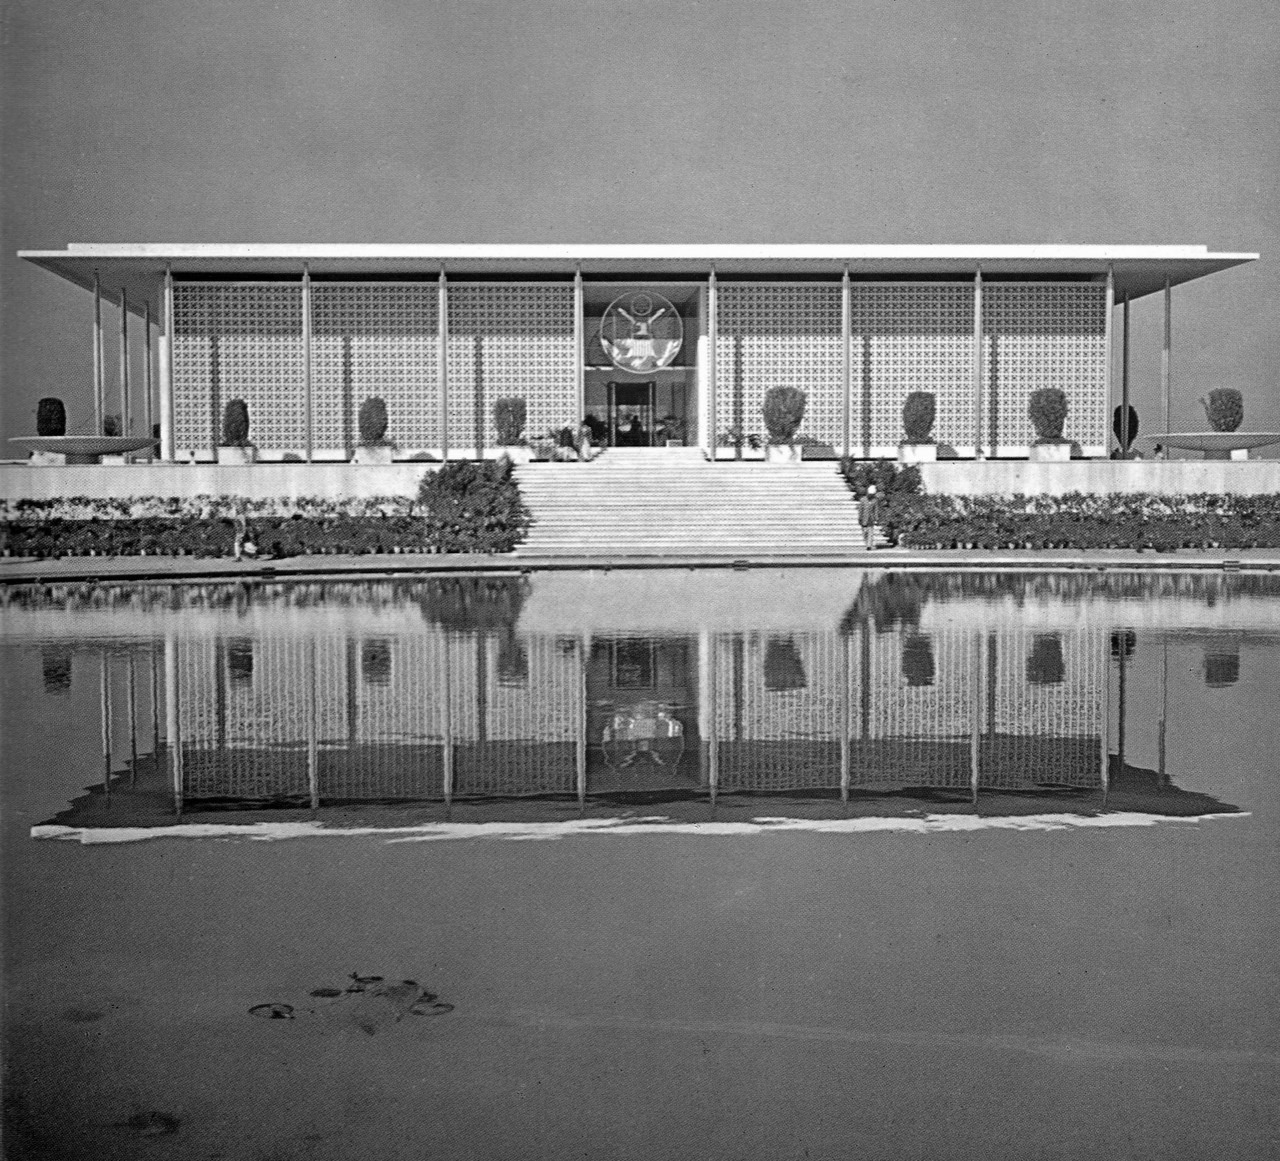 A journey of 100 years of Architecture in India | Part 02 - 1958 United States Embassy New Delhi